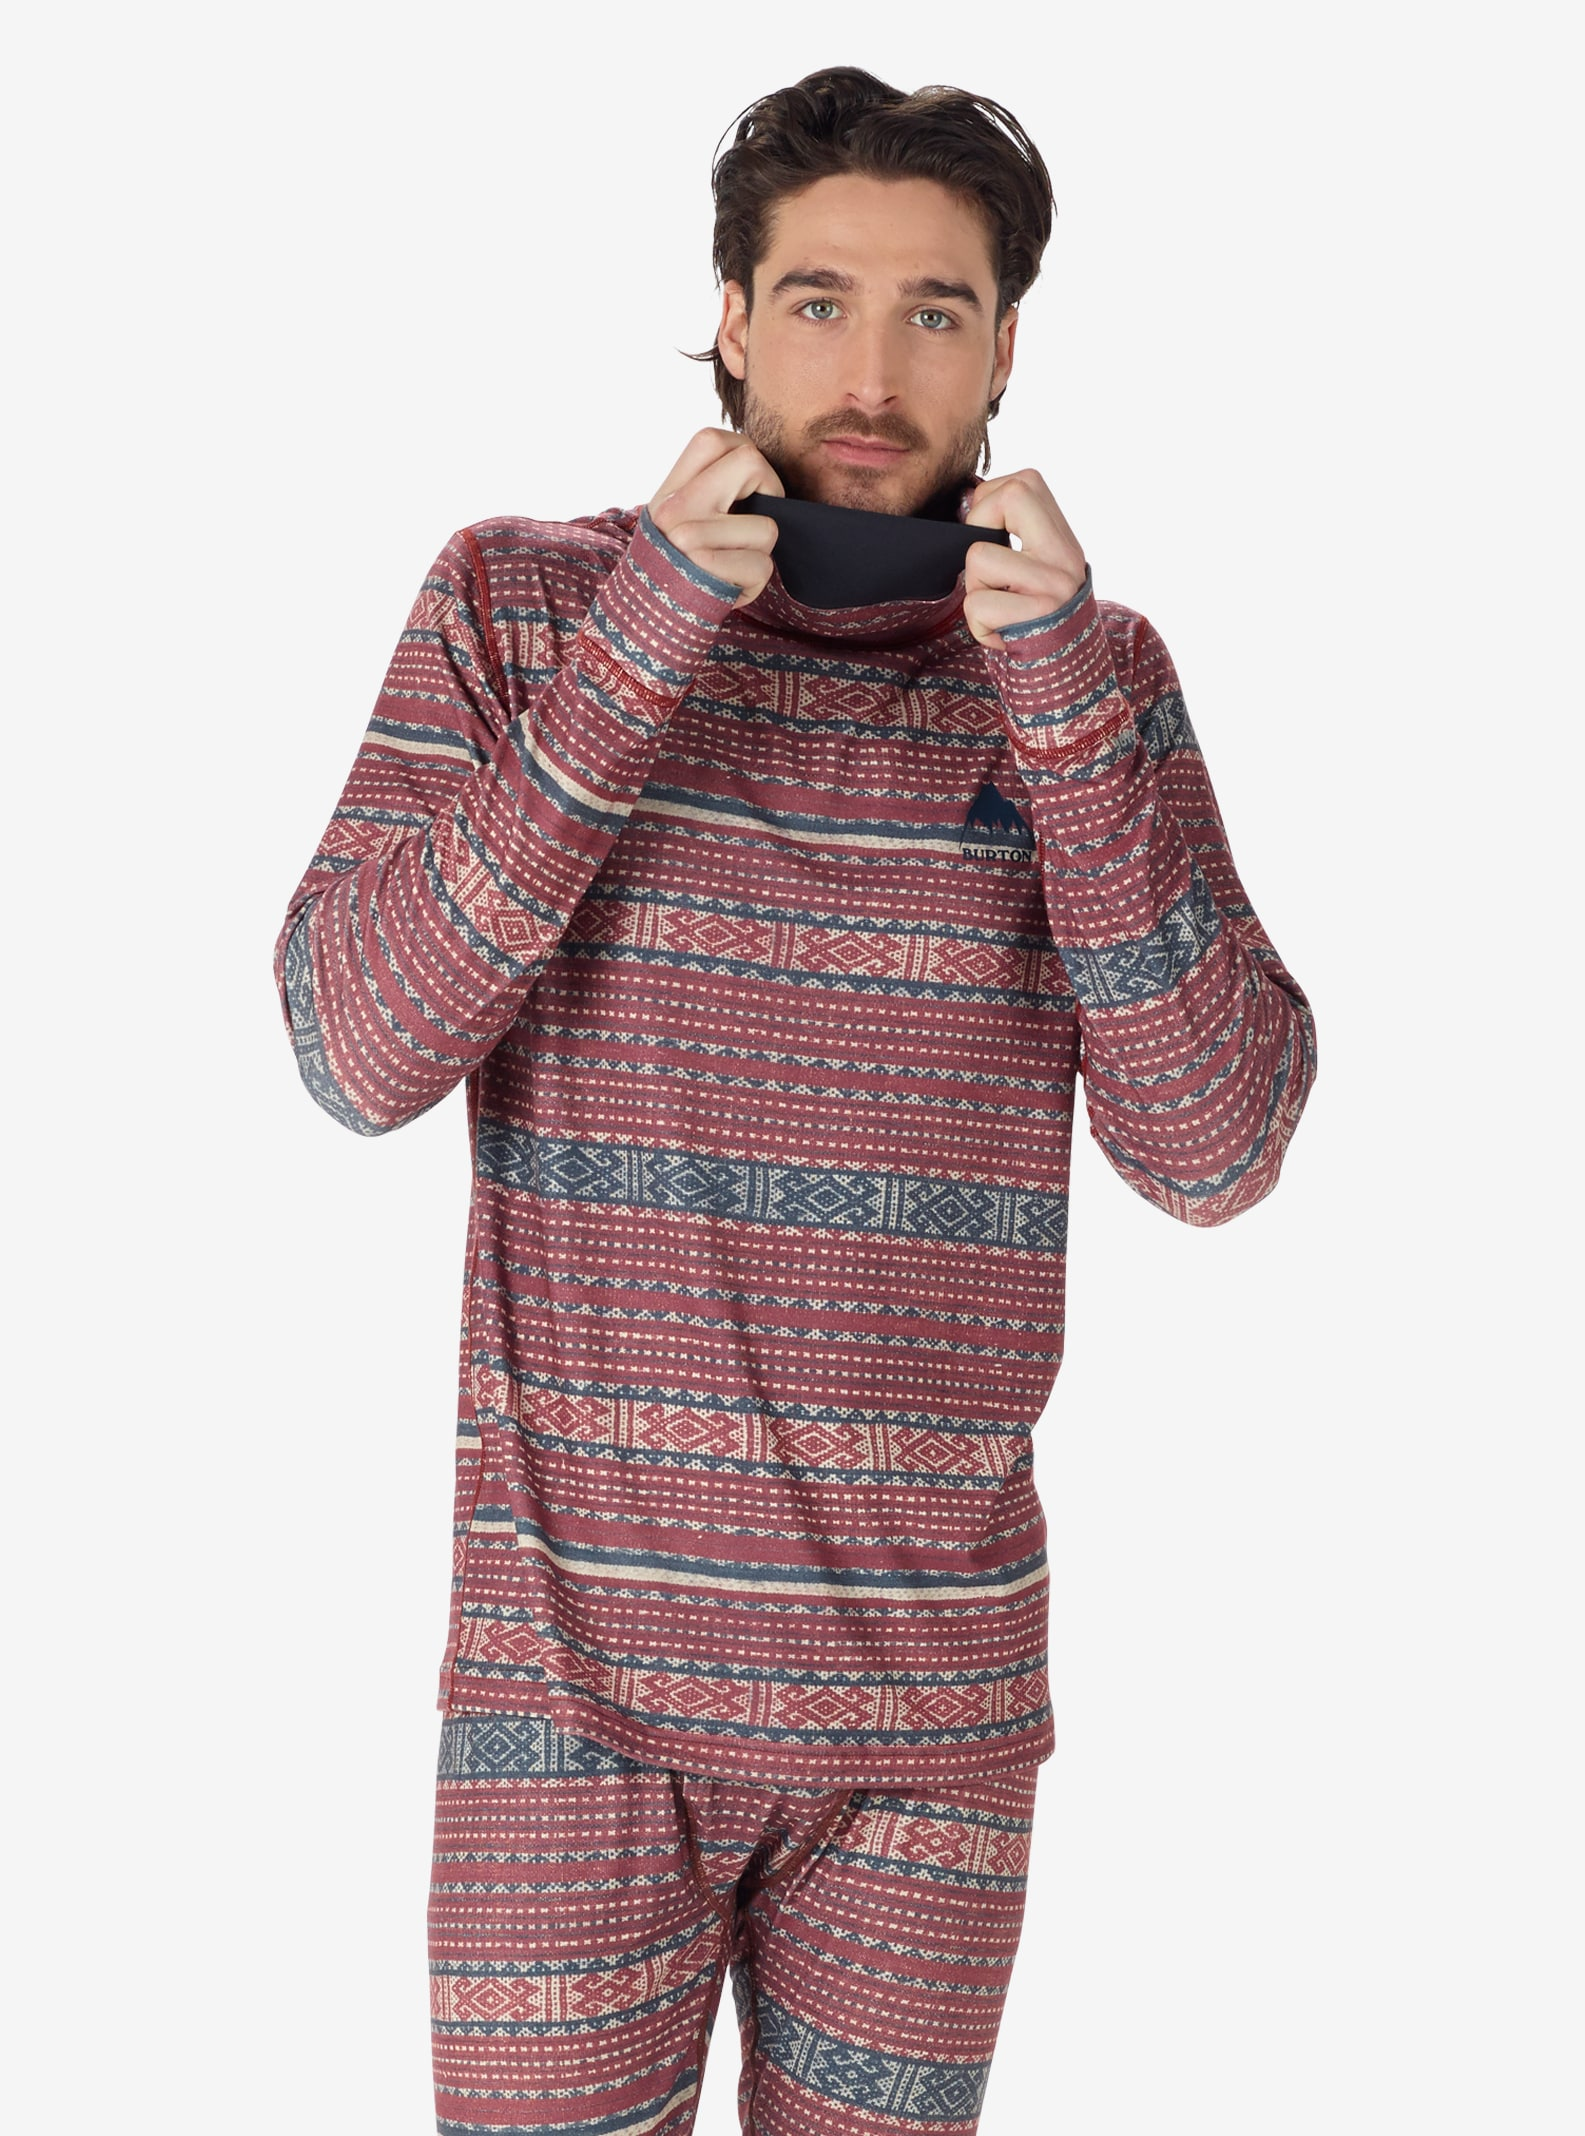 Men's Burton Midweight Base Layer Long Neck shown in Fired Brick Tanimbar